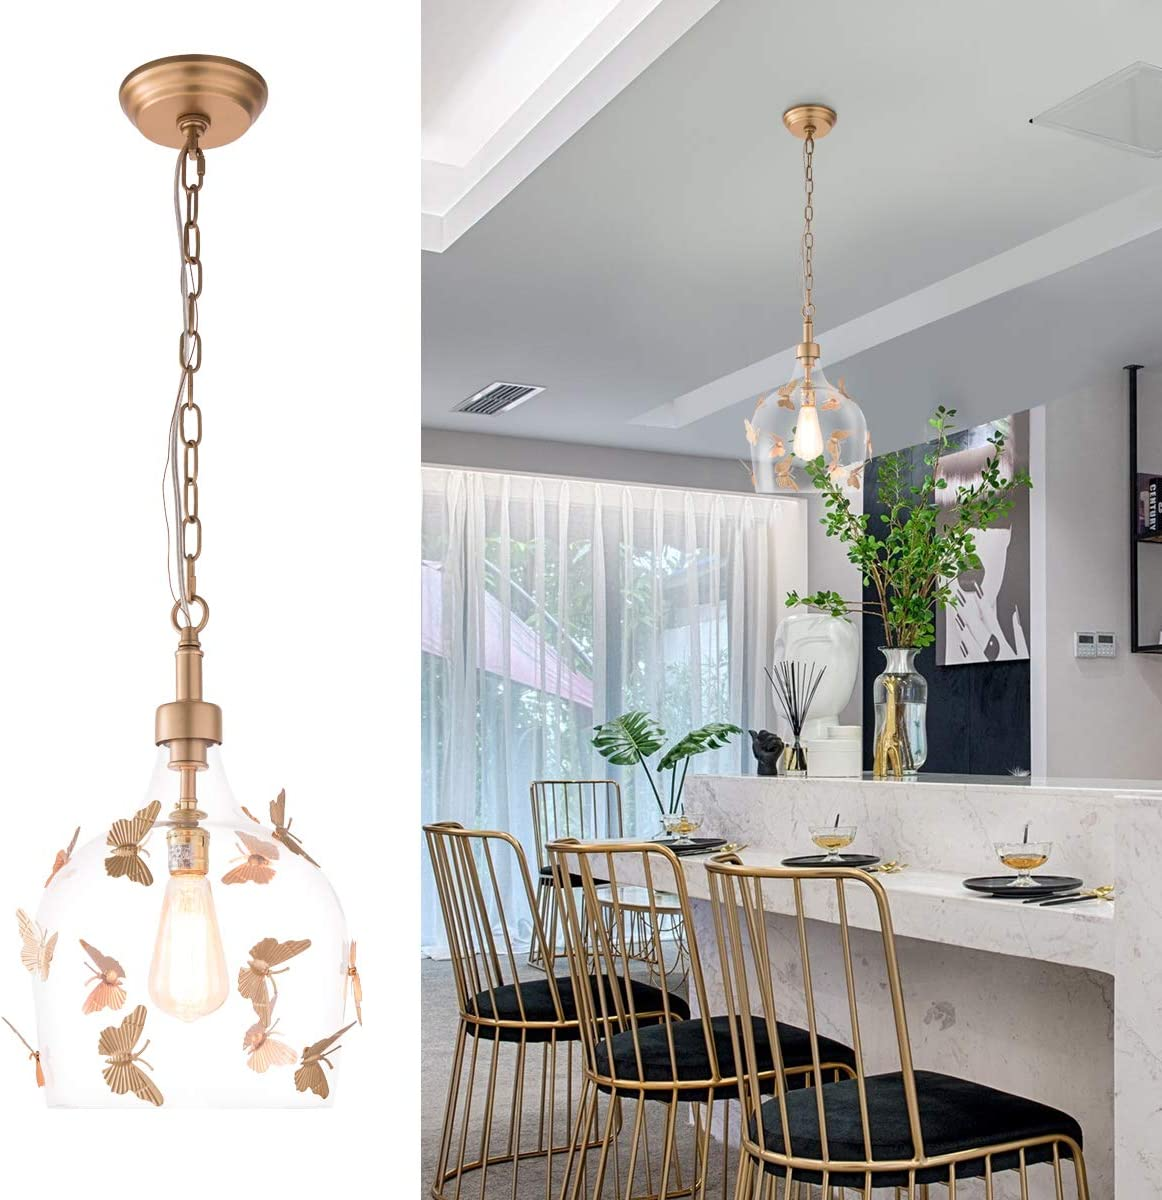 YIFI Foyer Pendant Lighting Butterfly Decorative Adjustable Hanging Pendant Light for Dining Room Kitchen Bedroom, Medium